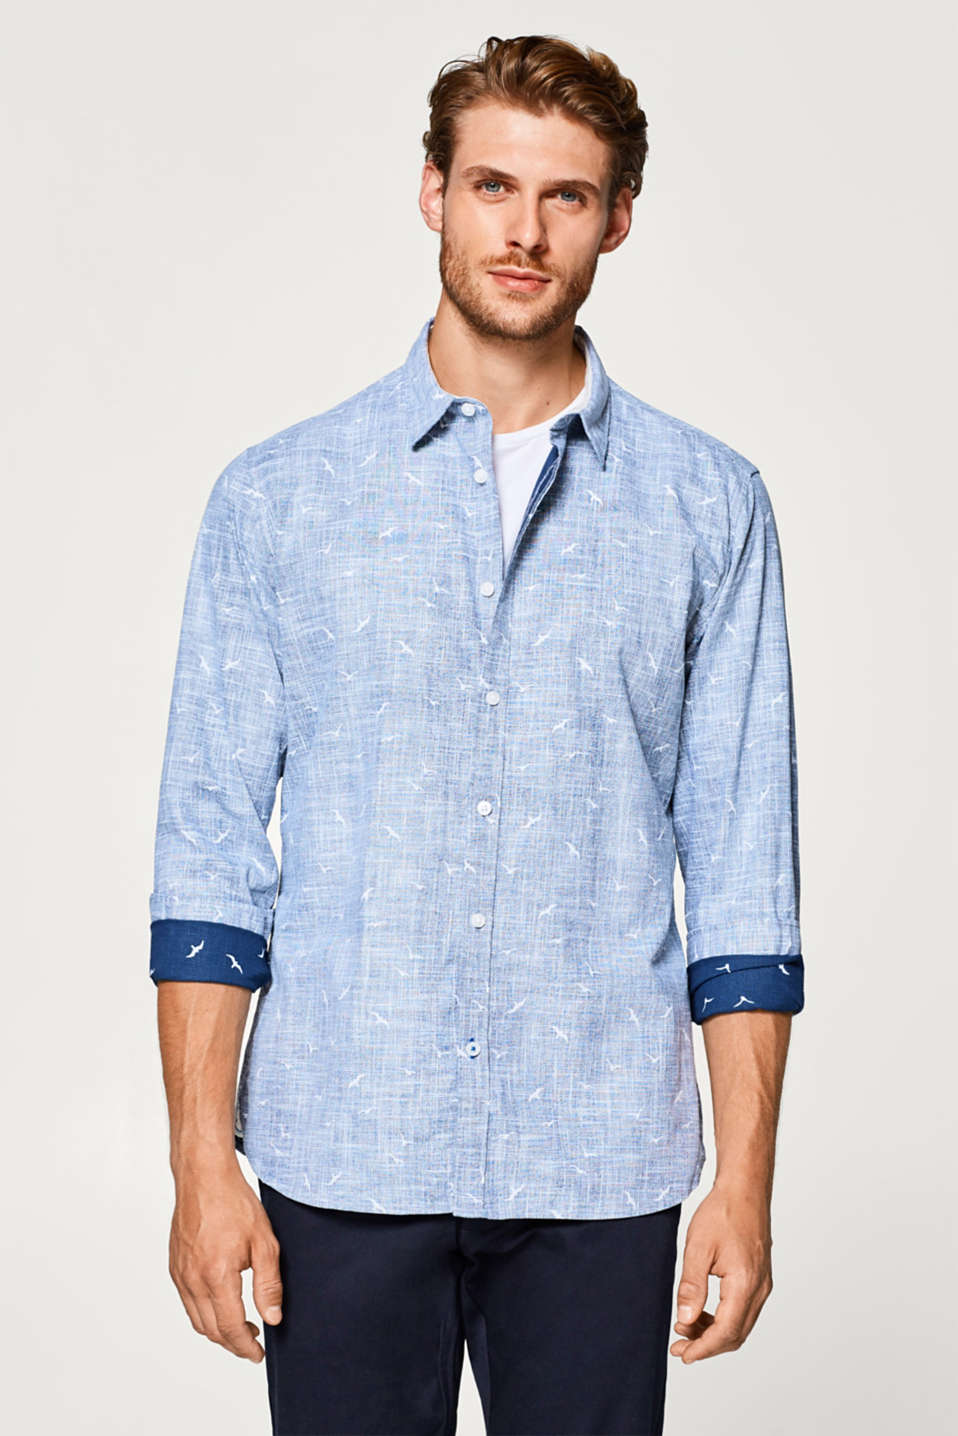 Esprit - Shirt with a bird print, 100% cotton